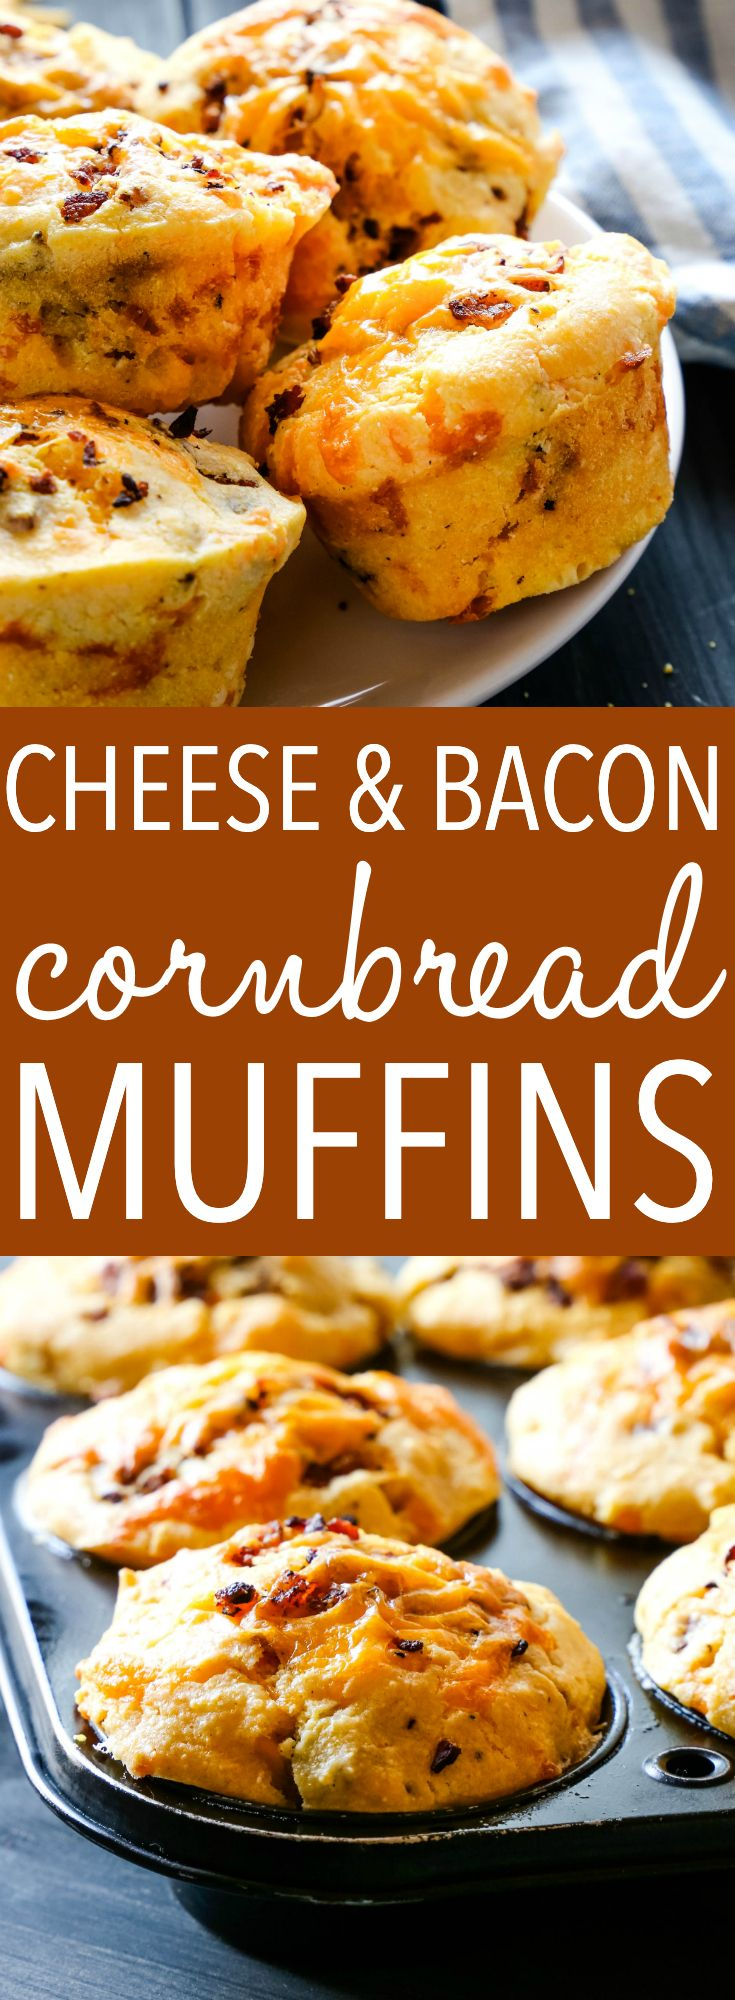 Cheddar Cheese and Bacon Cornbread Muffins